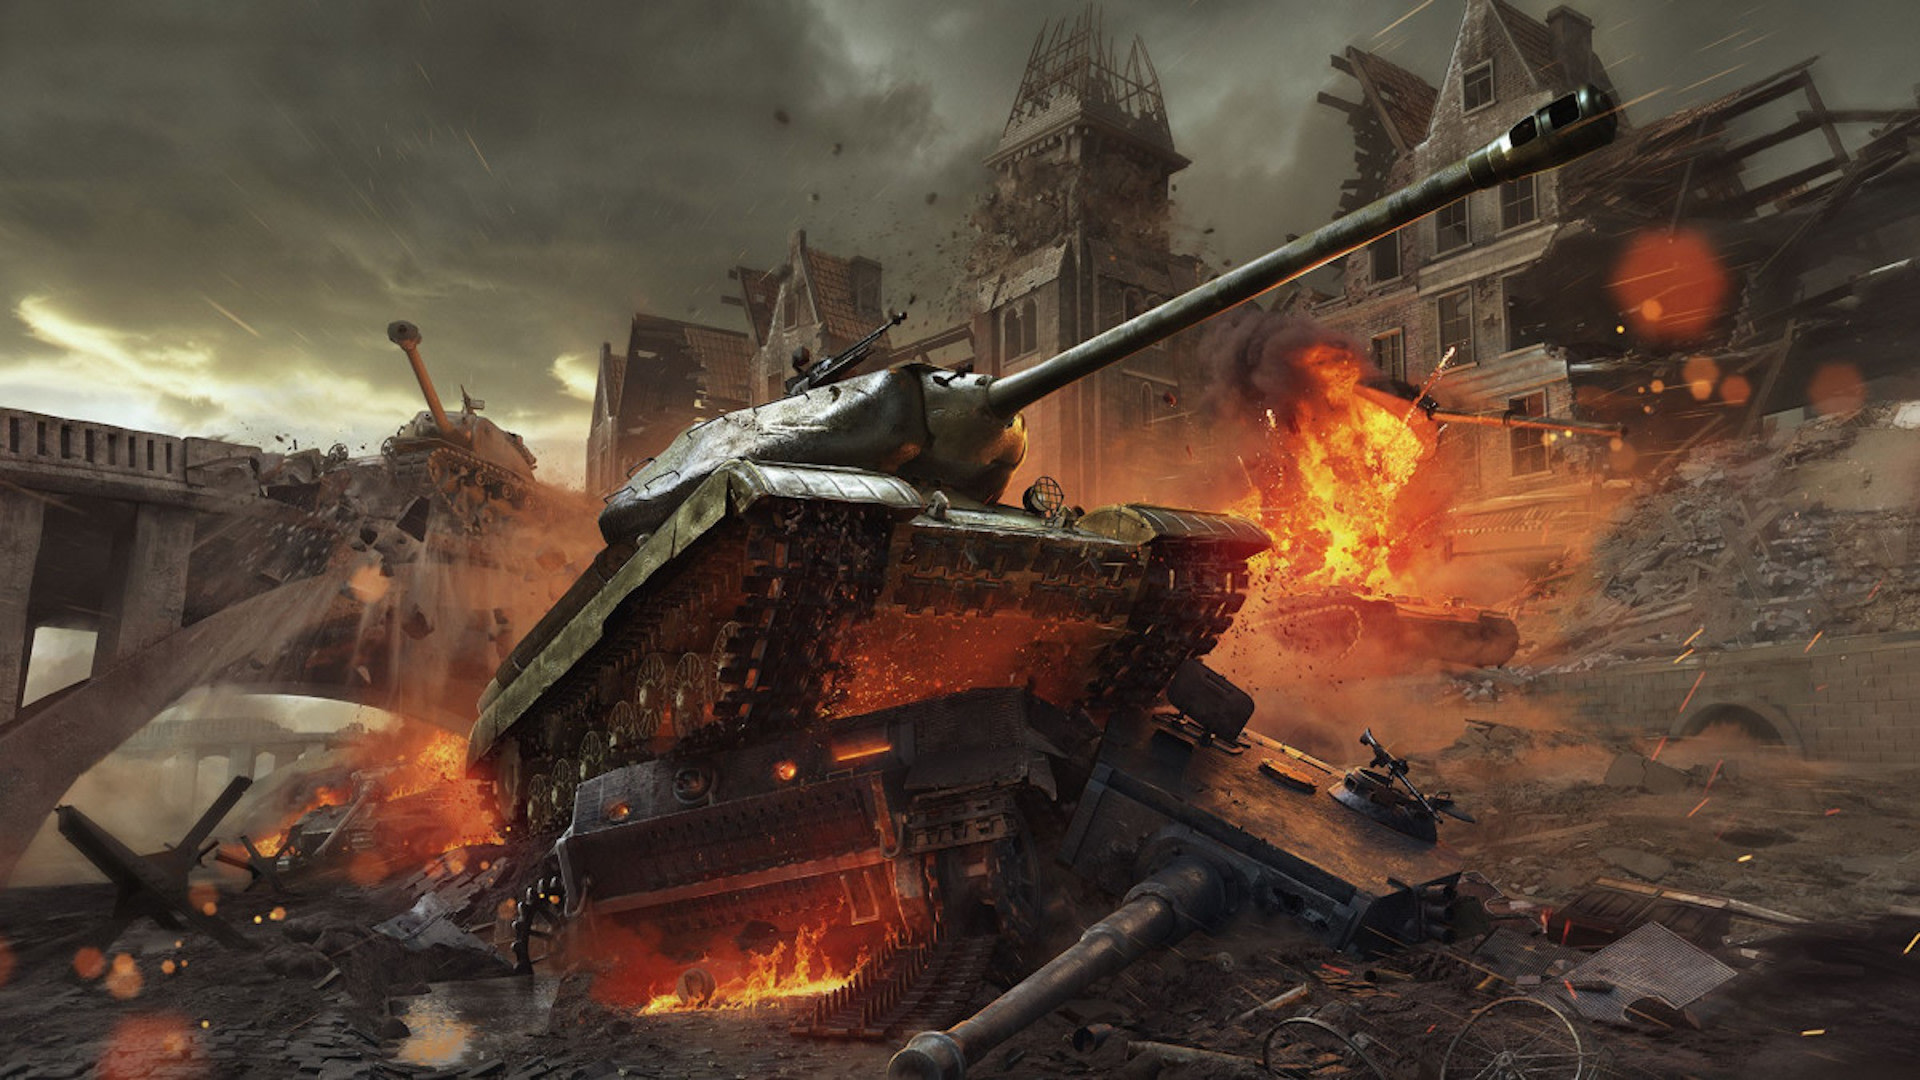 Kaboom! How World of Tanks' Design Battles History